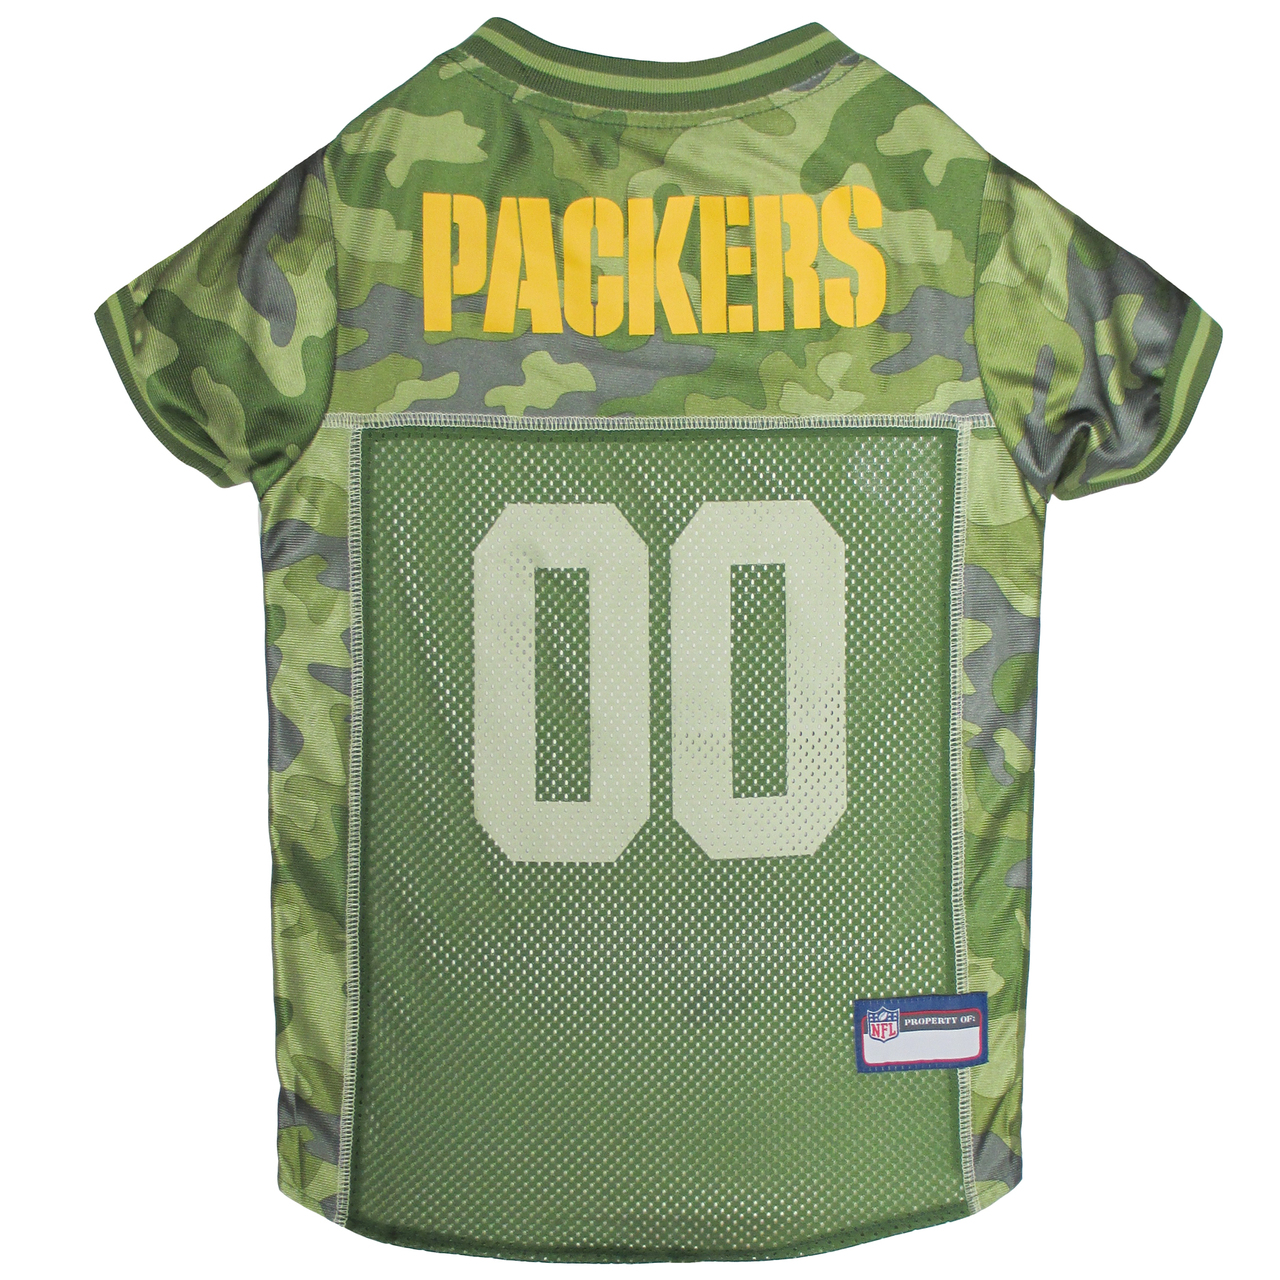 Hot Dog Green Bay Packers NFL Football Camo Pet/ Dog Jersey